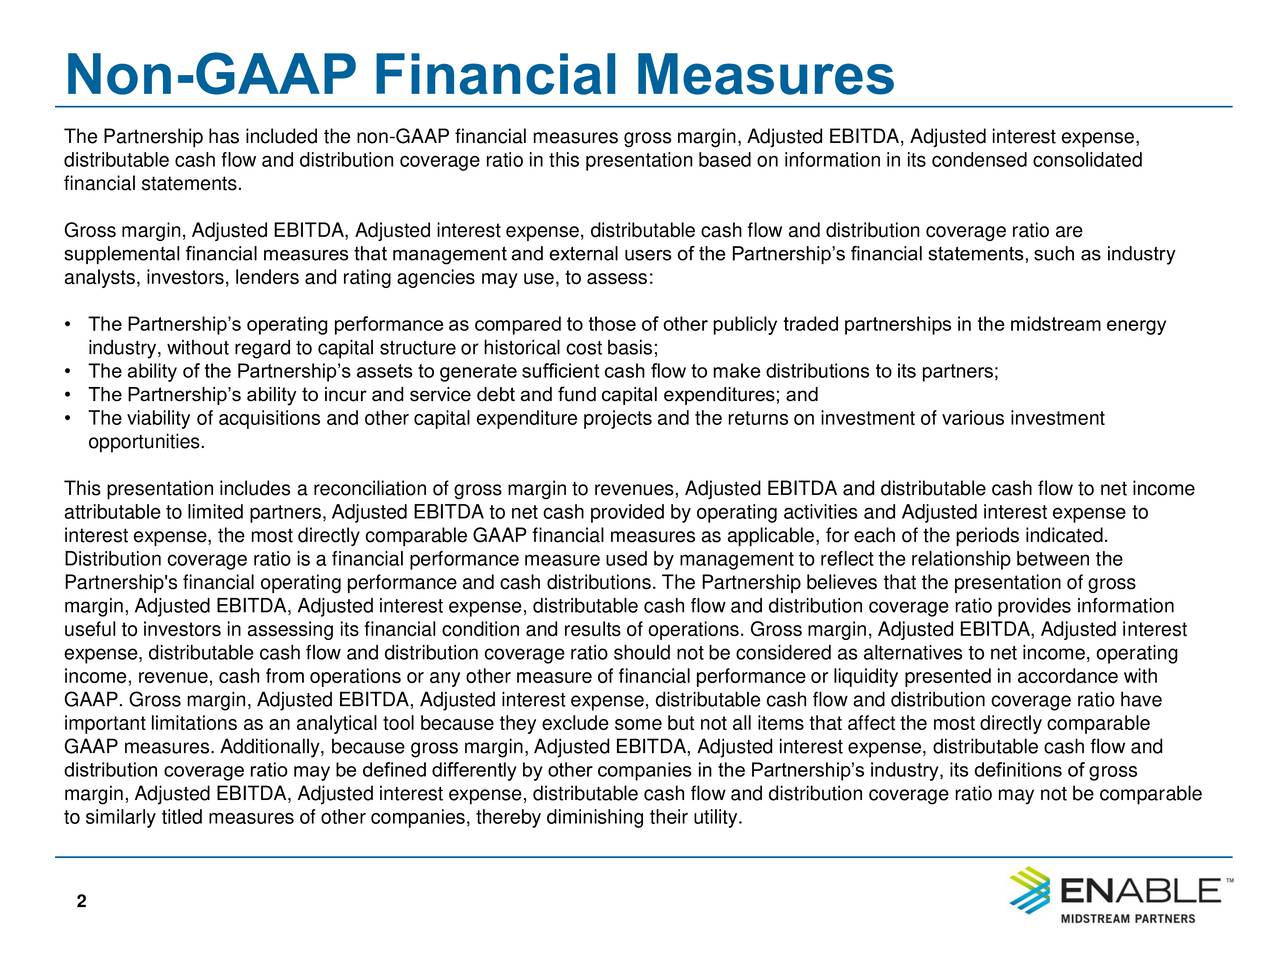 The Partnership has included the non-GAAP financial measures gross margin, Adjusted EBITDA, Adjusted interest expense, distributable cash flow and distribution coverage ratio in this presentation based on information in its condensed consolidated financial statements. Gross margin, Adjusted EBITDA, Adjusted interest expense, distributable cash flow and distribution coverage ratio are supplemental financial measures that management and external users of the Partnerships financial statements, such as industry analysts, investors, lenders and rating agencies may use, to assess: The Partnerships operating performance as compared to those of other publicly traded partnerships in the midstream energy industry, without regard to capital structure or historical cost basis; The ability of the Partnerships assets to generate sufficient cash flow to make distributions to its partners; The Partnerships ability to incur and service debt and fund capital expenditures; and The viability of acquisitions and other capital expenditure projects and the returns on investment of various investment opportunities. This presentation includes a reconciliation of gross margin to revenues, Adjusted EBITDA and distributable cash flow to net income attributable to limited partners, Adjusted EBITDA to net cash provided by operating activities and Adjusted interest expense to interest expense, the most directly comparable GAAP financial measures as applicable, for each of the periods indicated. Distribution coverage ratio is a financial performance measure used by management to reflect the relationship between the Partnership's financial operating performance and cash distributions. The Partnership believes that the presentation of gross margin, Adjusted EBITDA, Adjusted interest expense, distributable cash flow and distribution coverage ratio provides information useful to investors in assessing its financial condition and results of operations. Gross margin, Adjusted EBITDA, Adjusted interest e